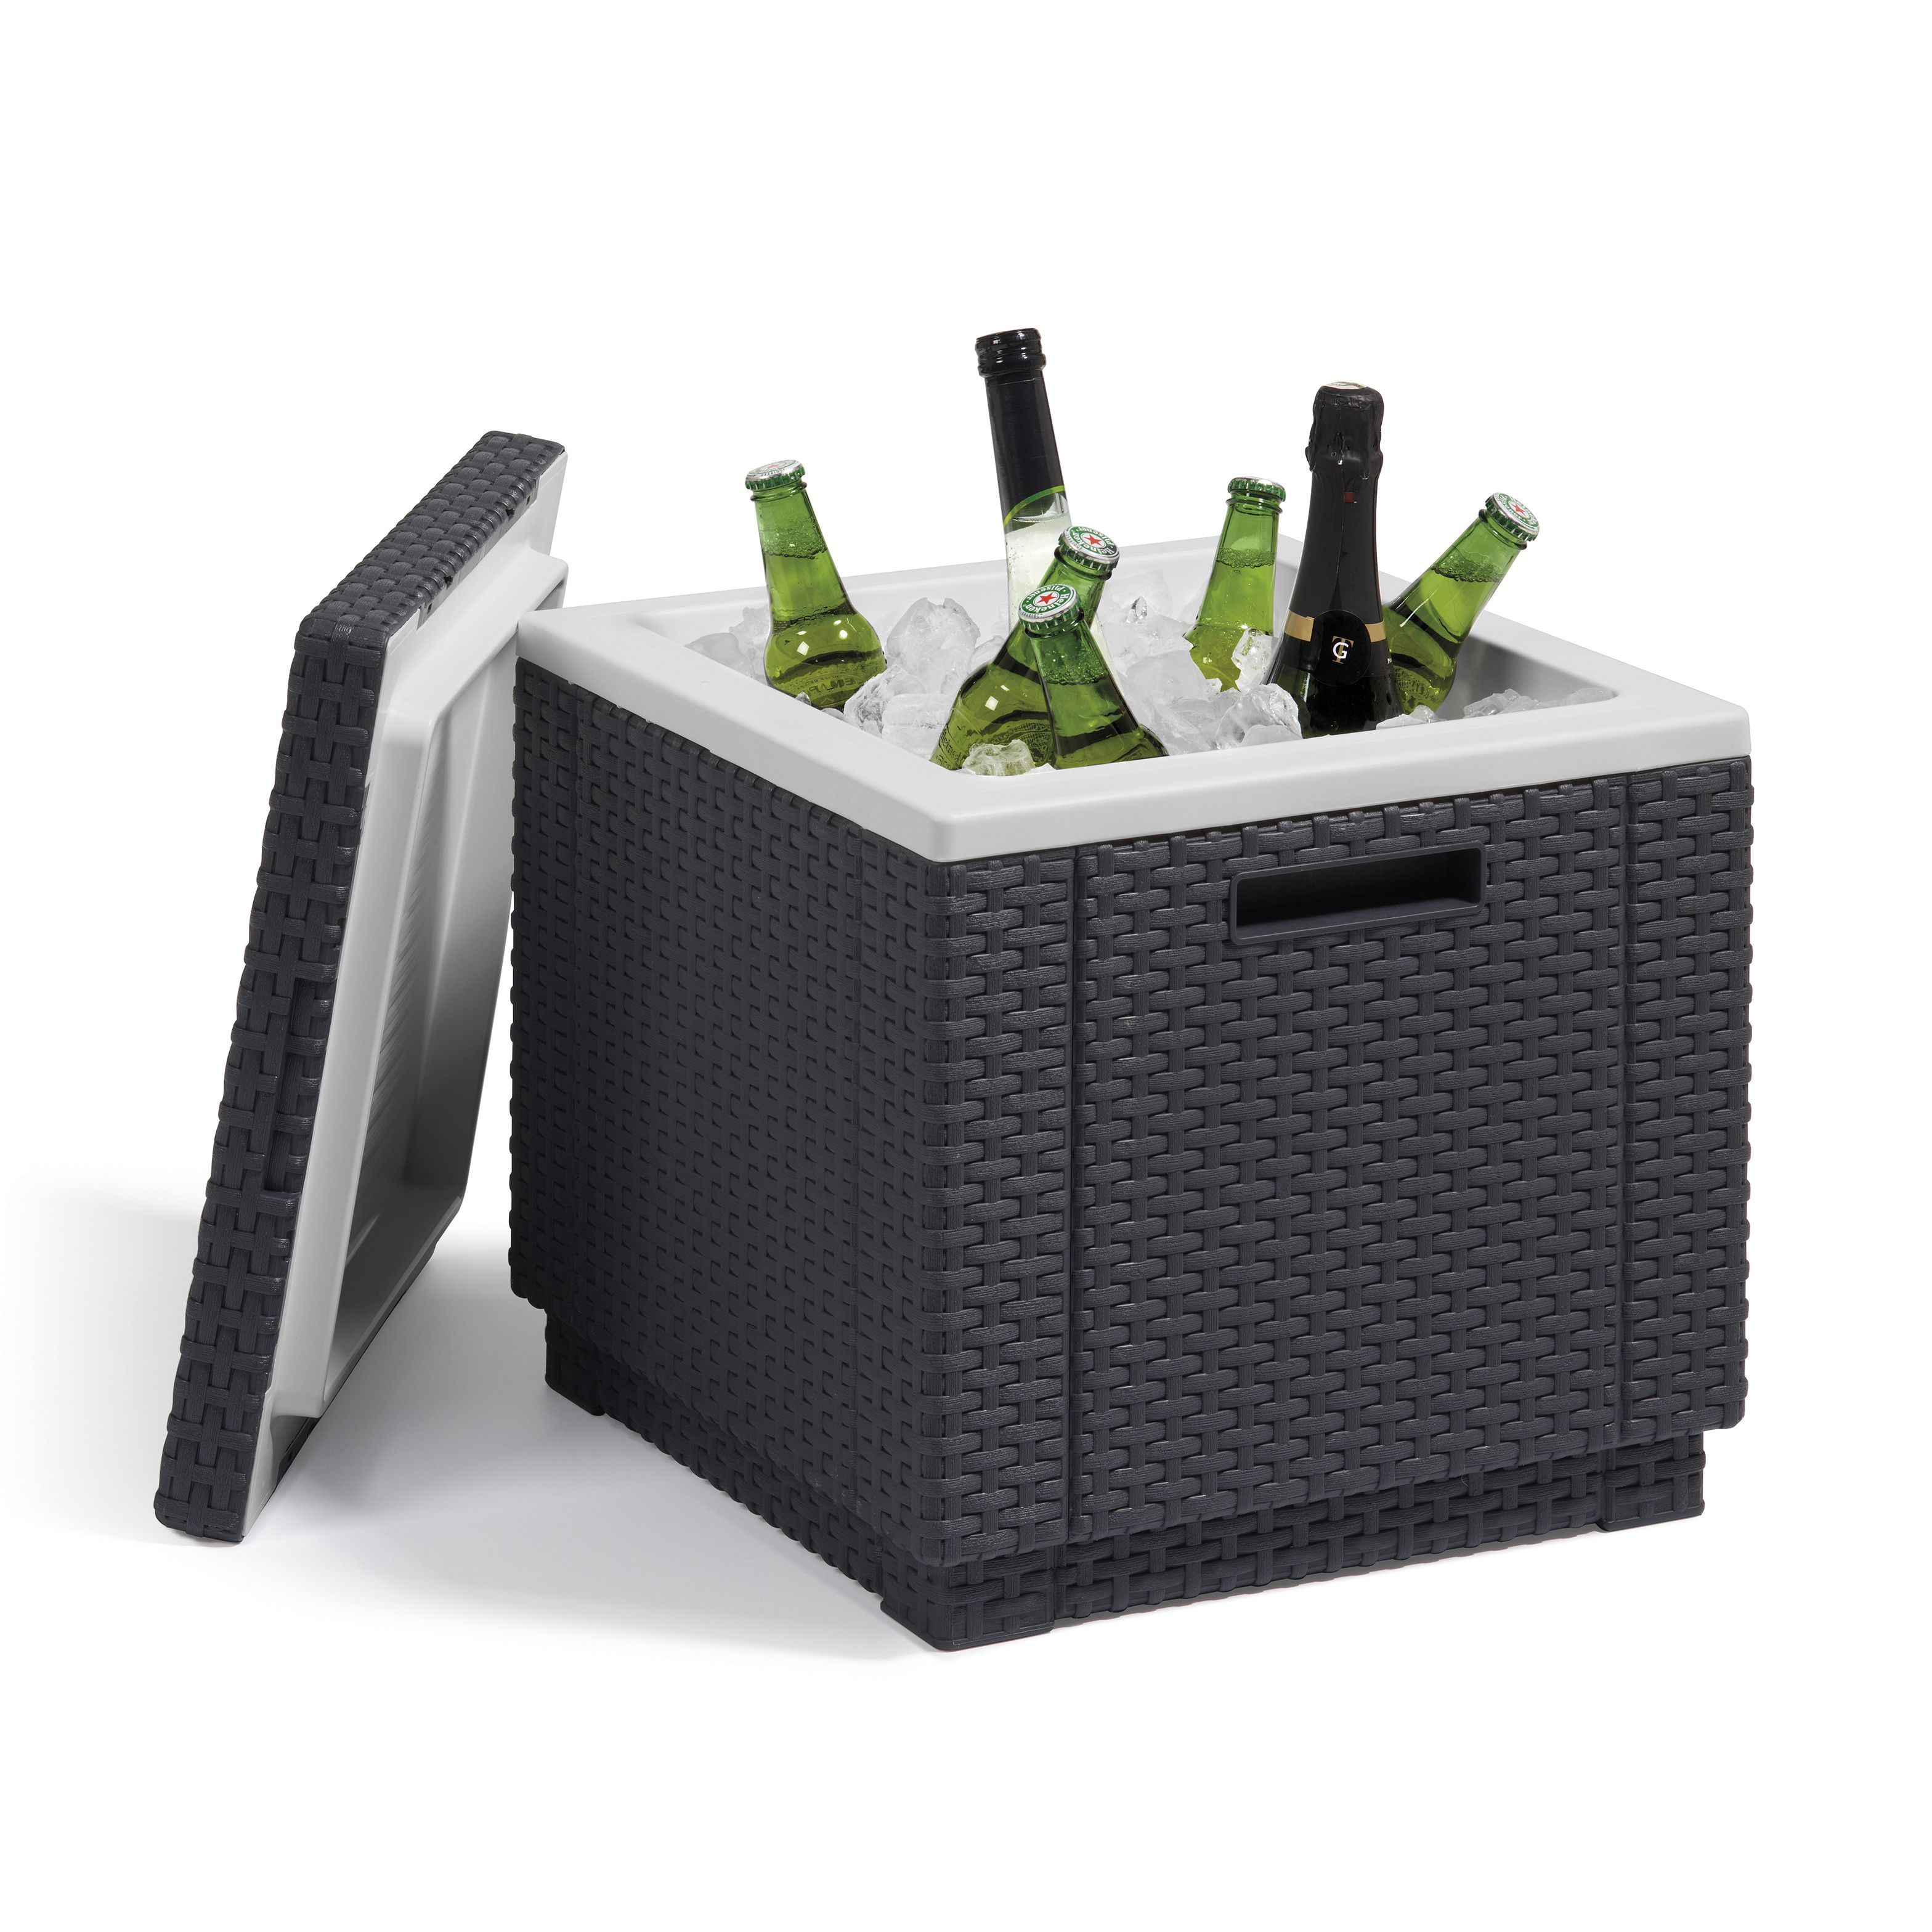 SunTime Outdoor Living Ice Cube Cooler